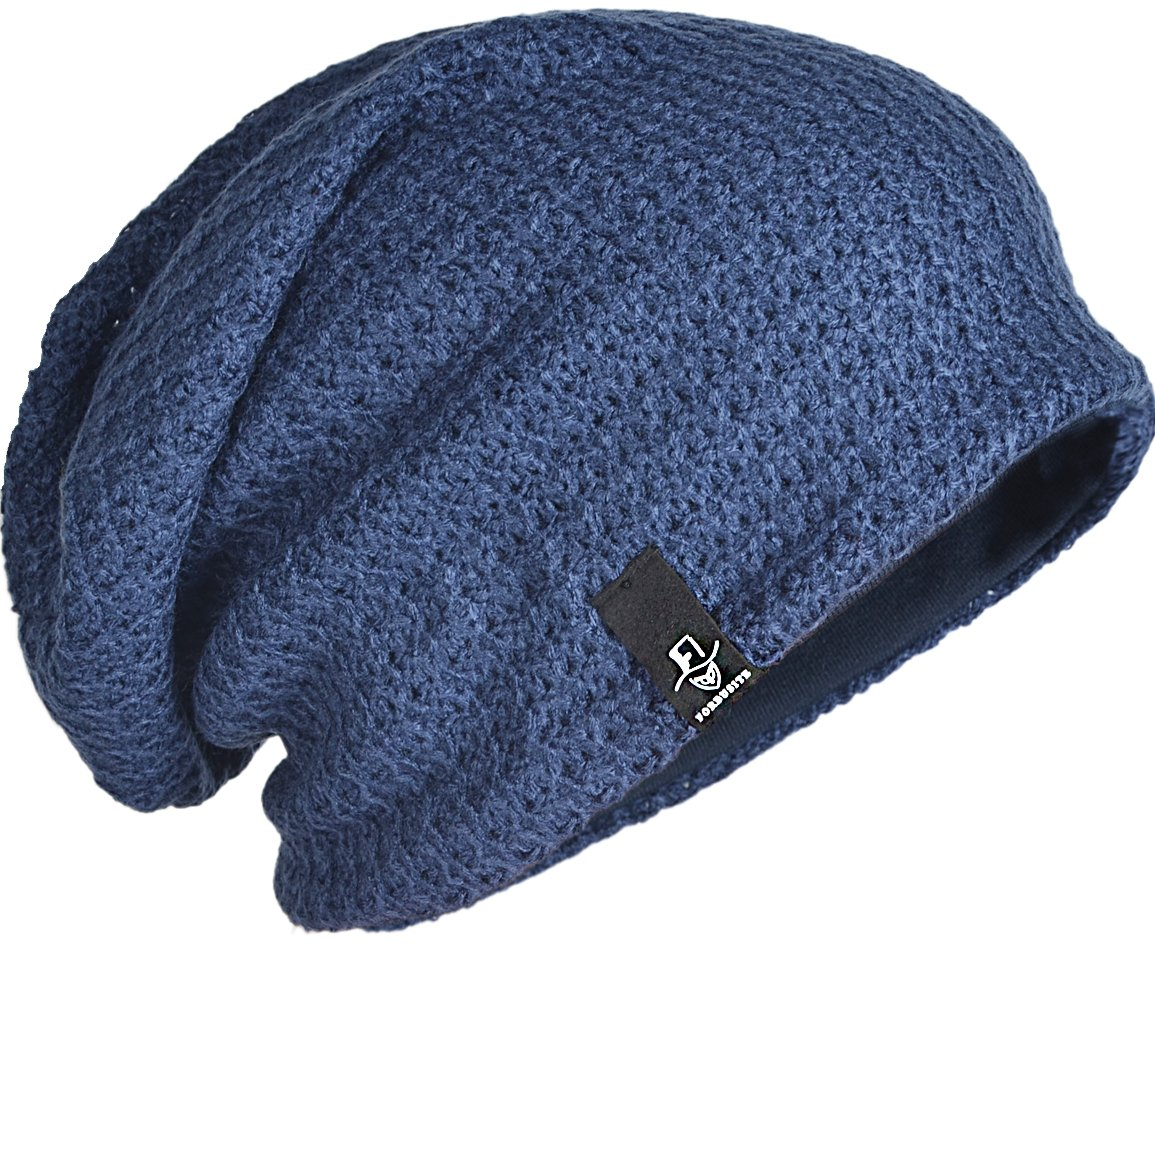 FORBUSITE Mens Slouchy Long Oversized Beanie Knit Hat for Summer Winter B08 B08b-B308-BN